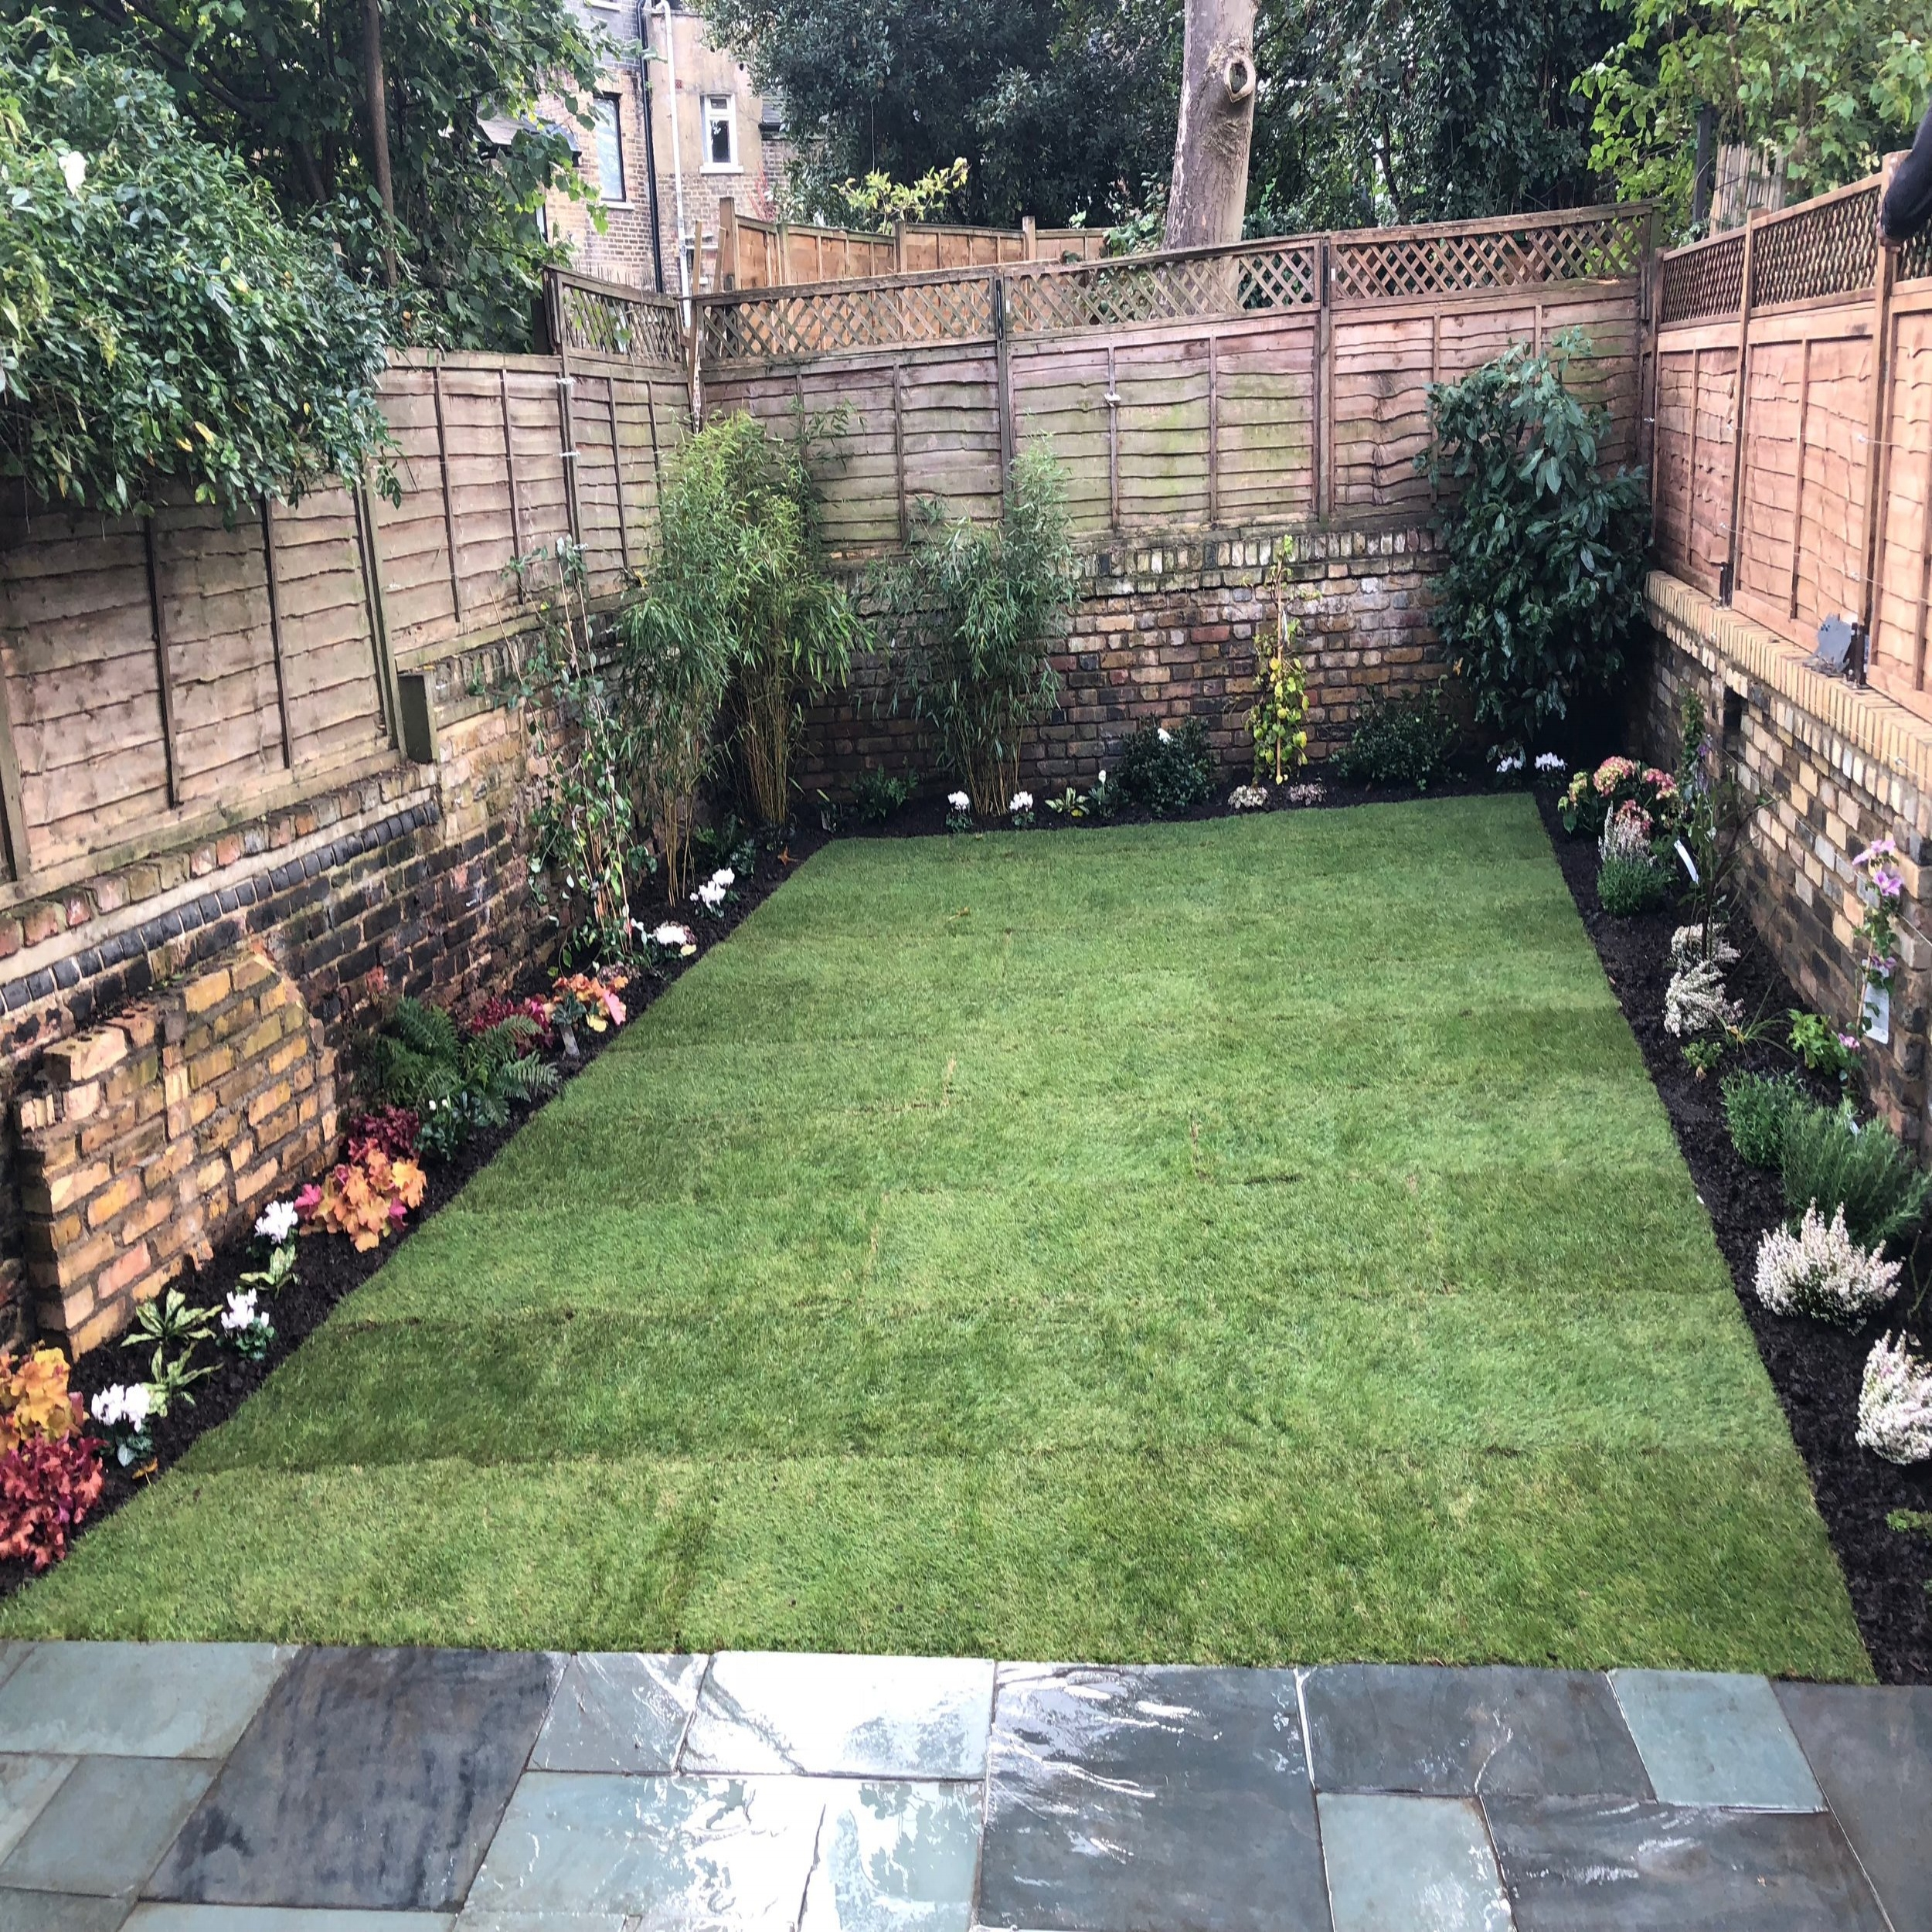 Stoke Newington  a colourful and simple garden on a tight budget. dominated by a central rectangular lawn and surrounded by a mixture of herbaceous perennials and shrubs,  this is an attractive and spacious garden,